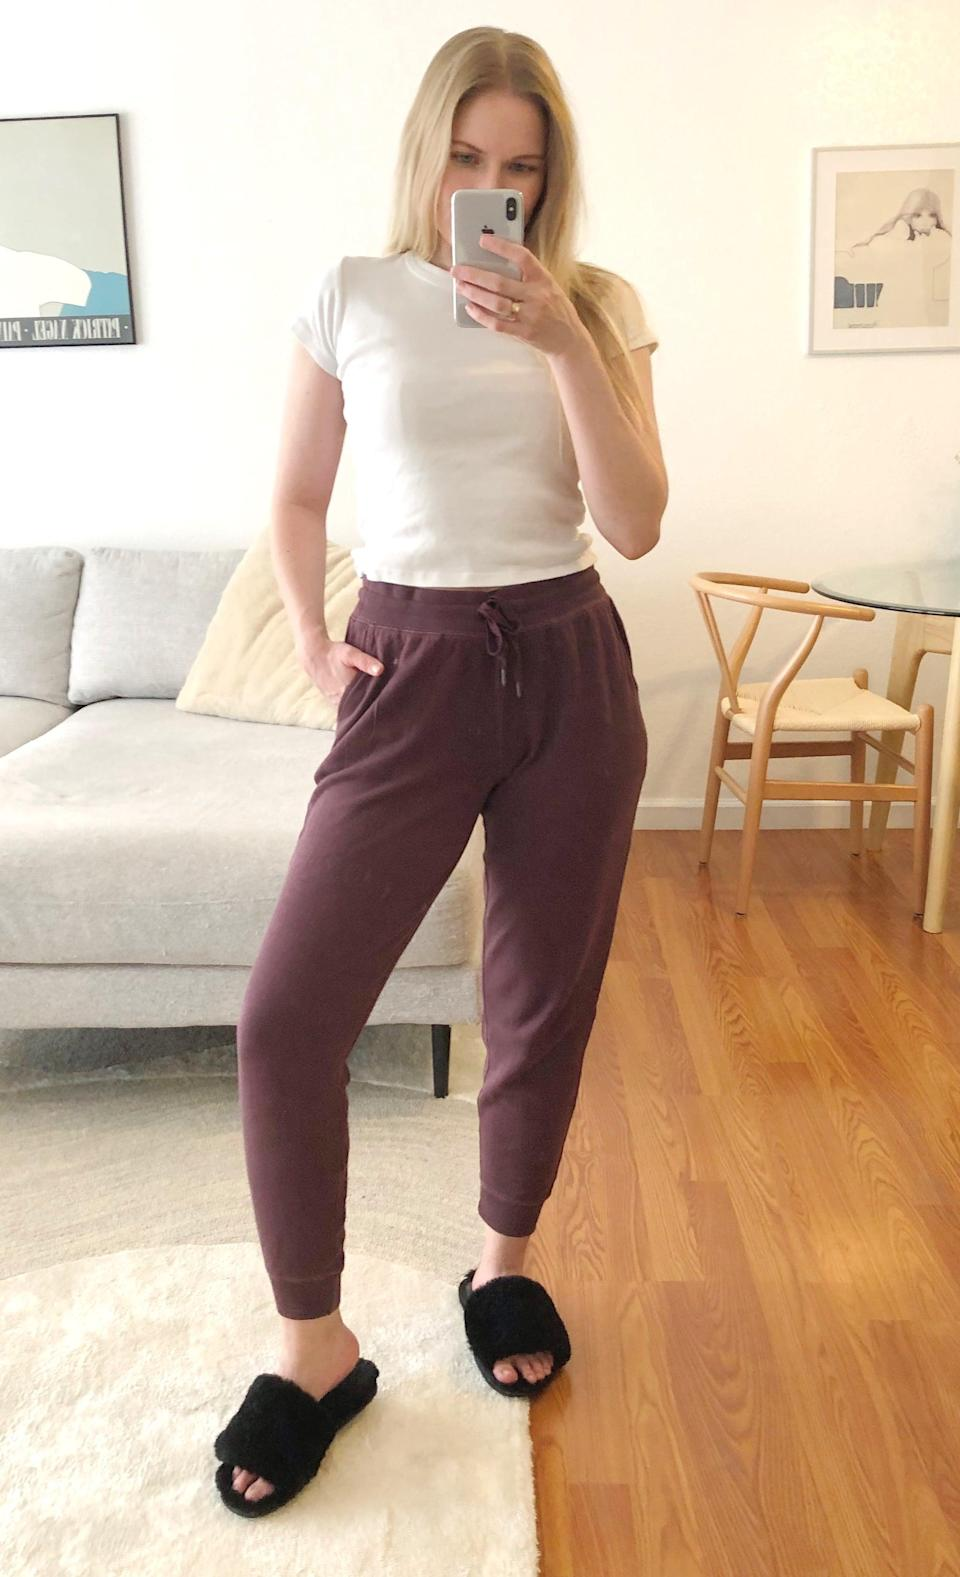 """<p><strong>The item:</strong> <span>Mid-Rise Tapered-Leg Jogger Pants</span> ($28, originally $30)</p> <p><strong>What our editor said: </strong>""""If I have to run an errand to grab something at the store, they actually look cute with some sneakers and a denim jacket. I have them in a cute maroon shade, but they come in over 10 color choices and fun patterns."""" - KJ<br> If you want to read more, here is the complete <a href=""""https://www.popsugar.com/fashion/most-comfortable-joggers-from-old-navy-editor-review-47675011"""" class=""""link rapid-noclick-resp"""" rel=""""nofollow noopener"""" target=""""_blank"""" data-ylk=""""slk:review"""">review</a>.</p>"""